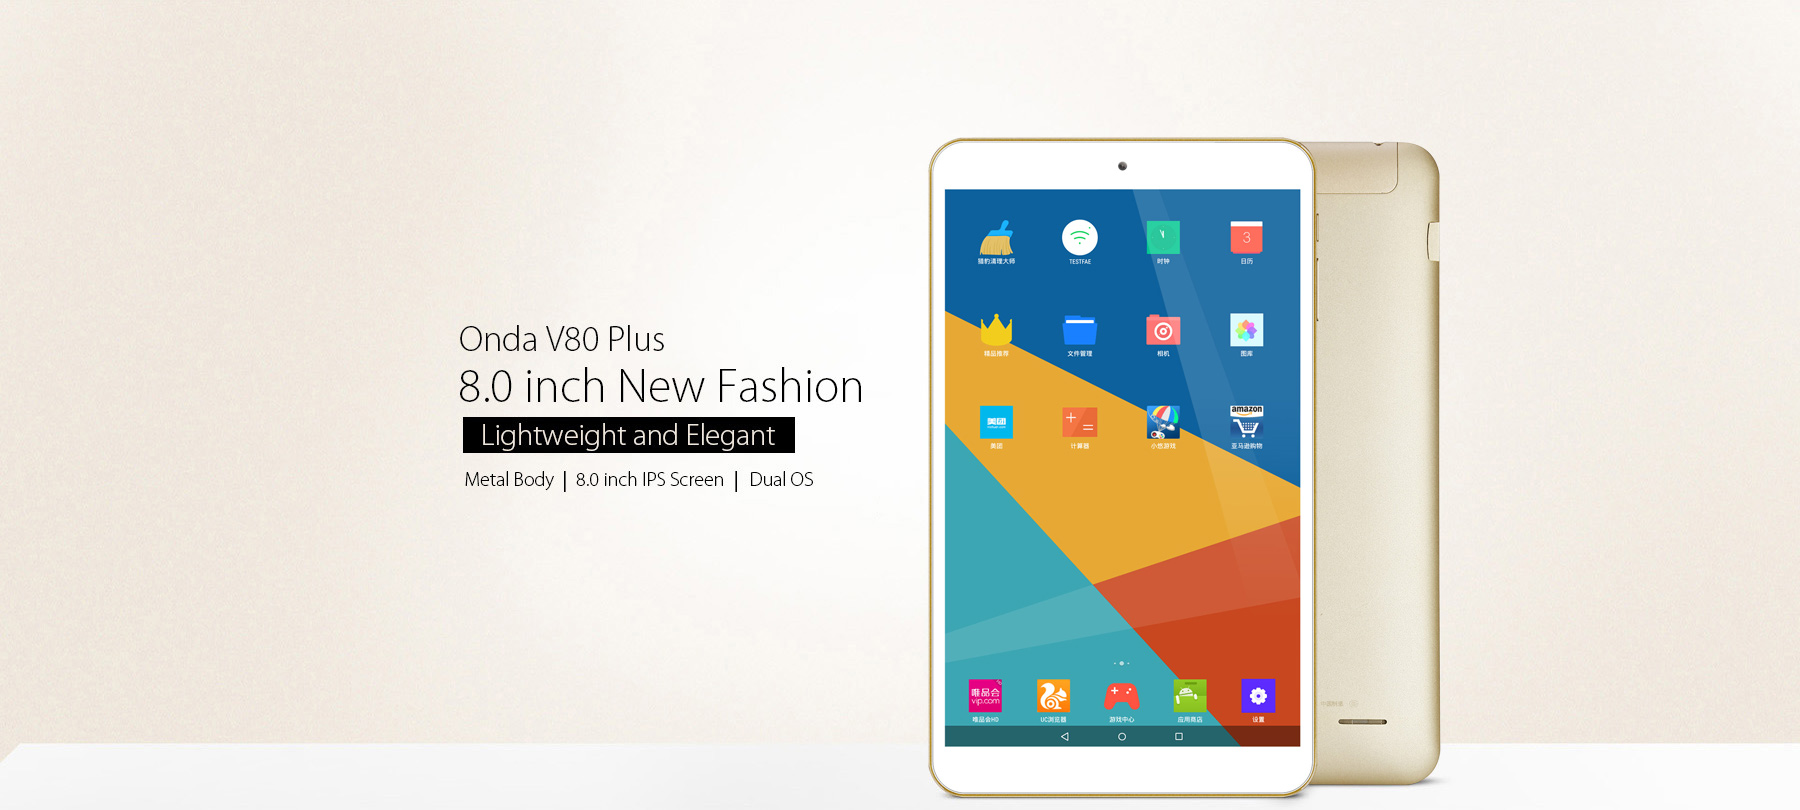 Onda V80 Plus Tablet PC Windows 10 + Android 5.1 8.0 inch IPS Screen Intel Cherry Trail Z8300 64bit Quad Core 1.44GHz 2GB RAM 32GB ROM Dual Cameras